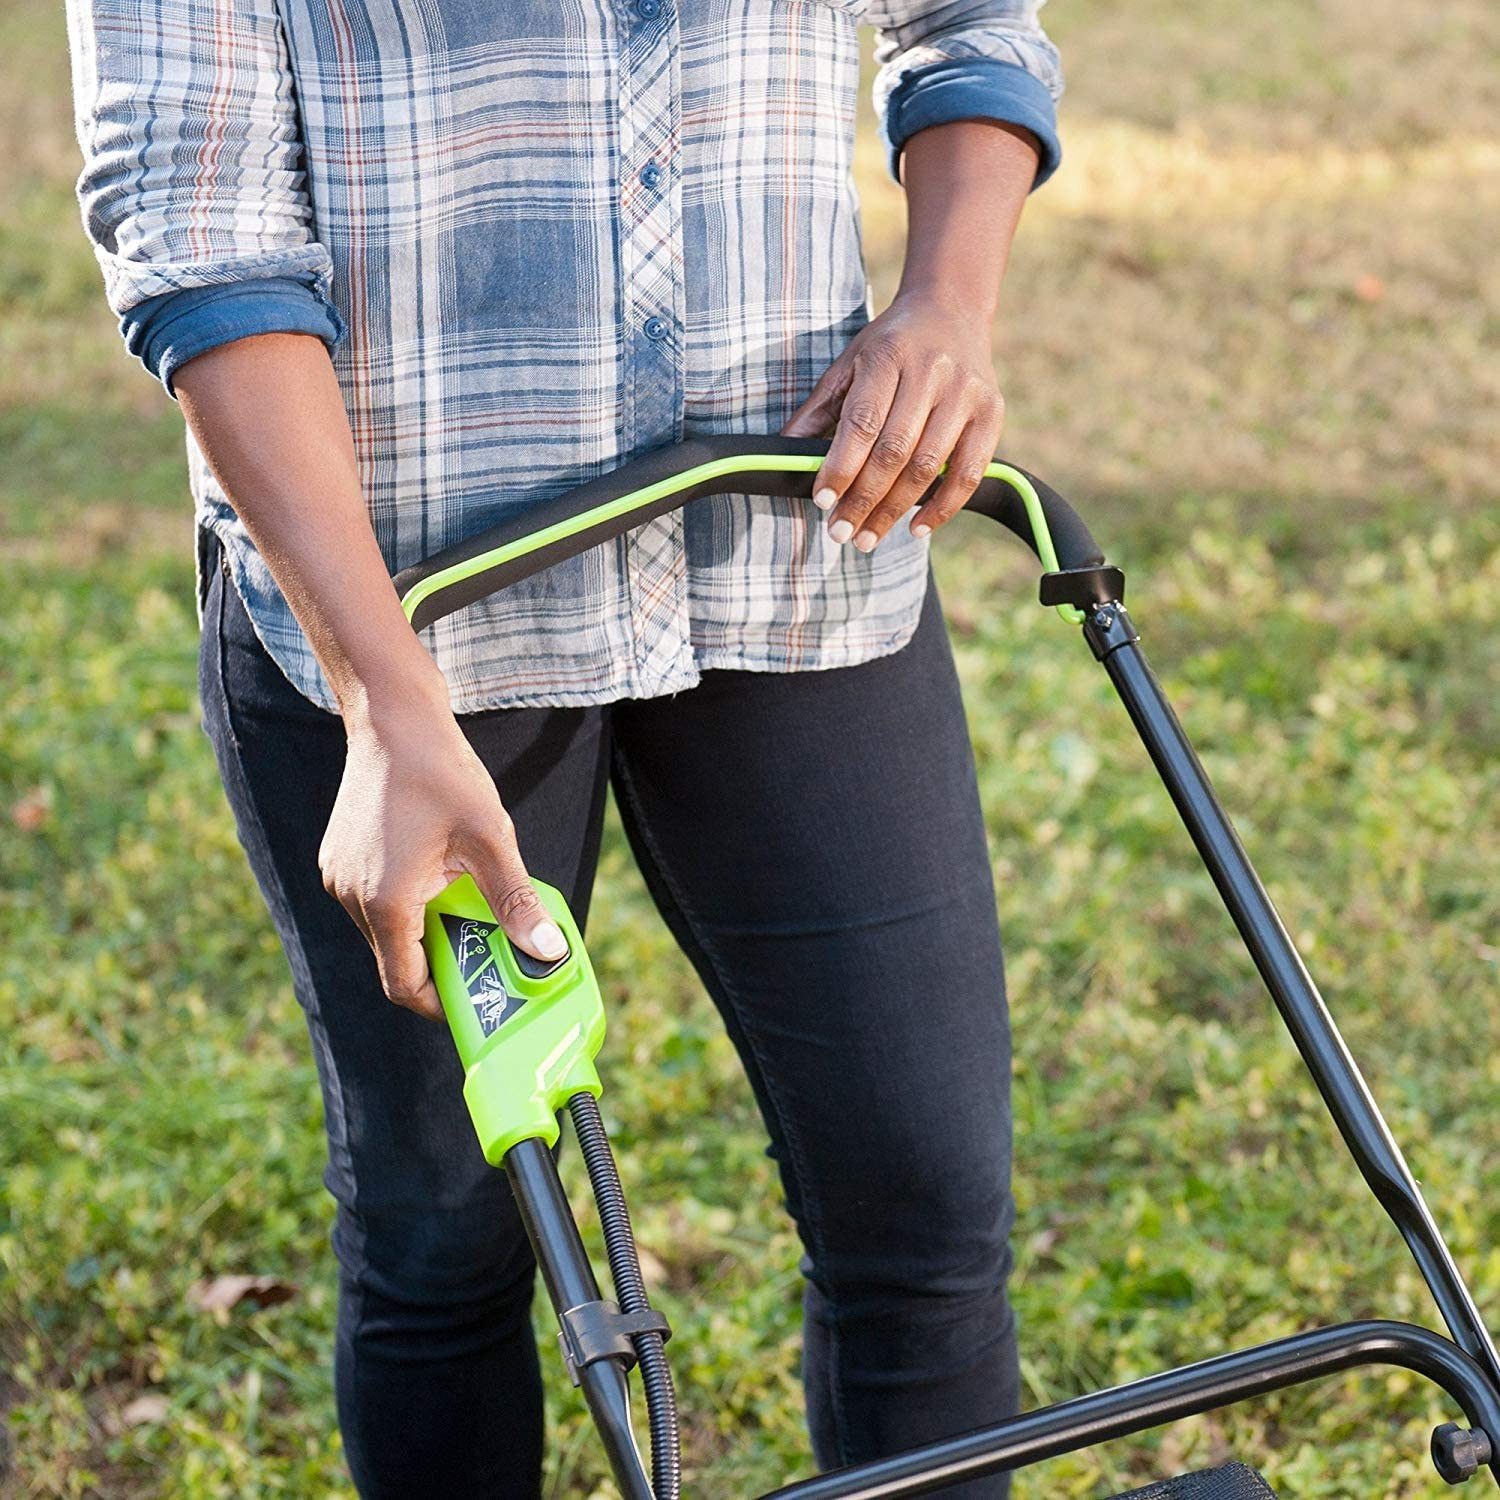 Greenworks 40V 2500502 Cordless Lawn Mower  Best Cordless Electric Lawn Mower